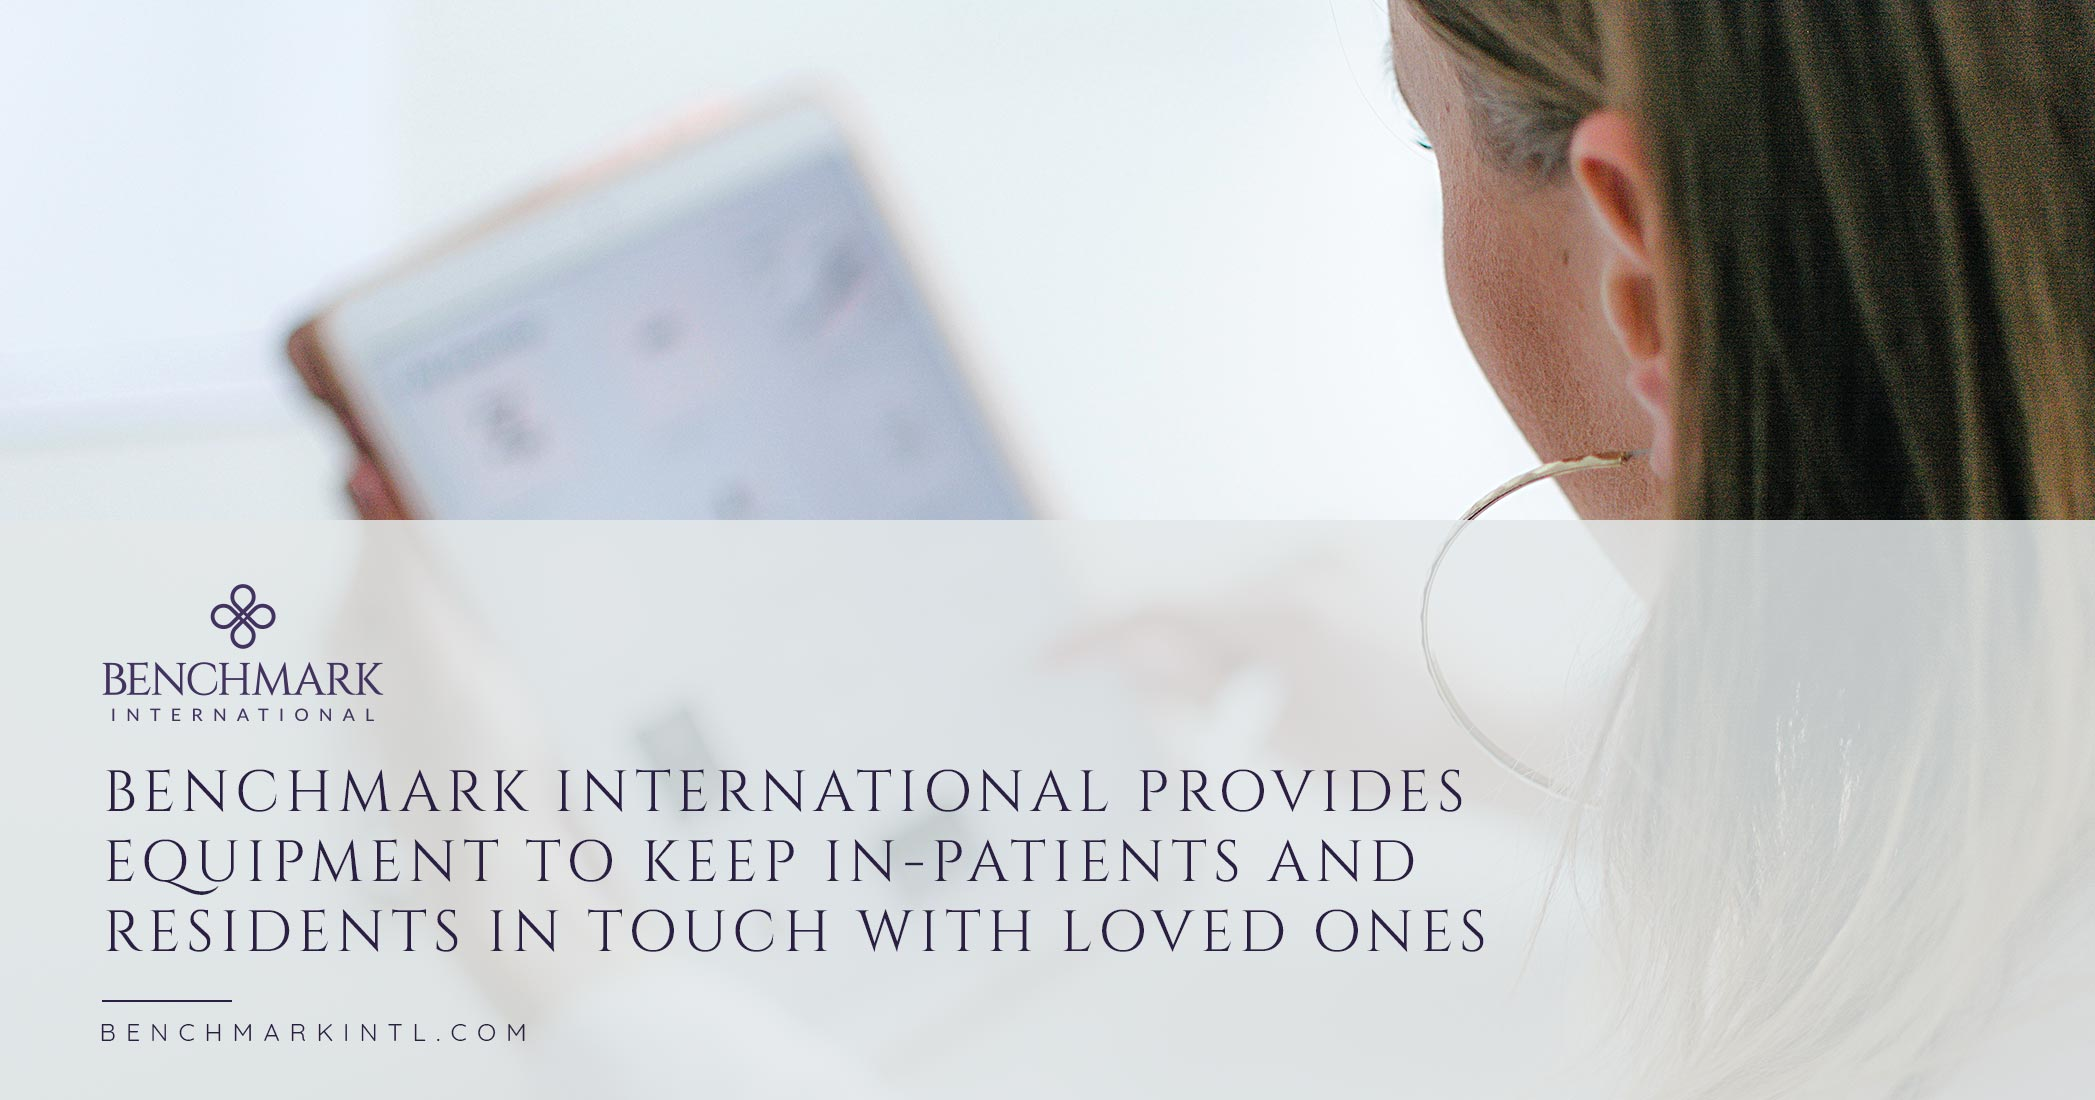 Benchmark International Provides Equipment to Keep In-Patients and Residents in Touch with Loved Ones